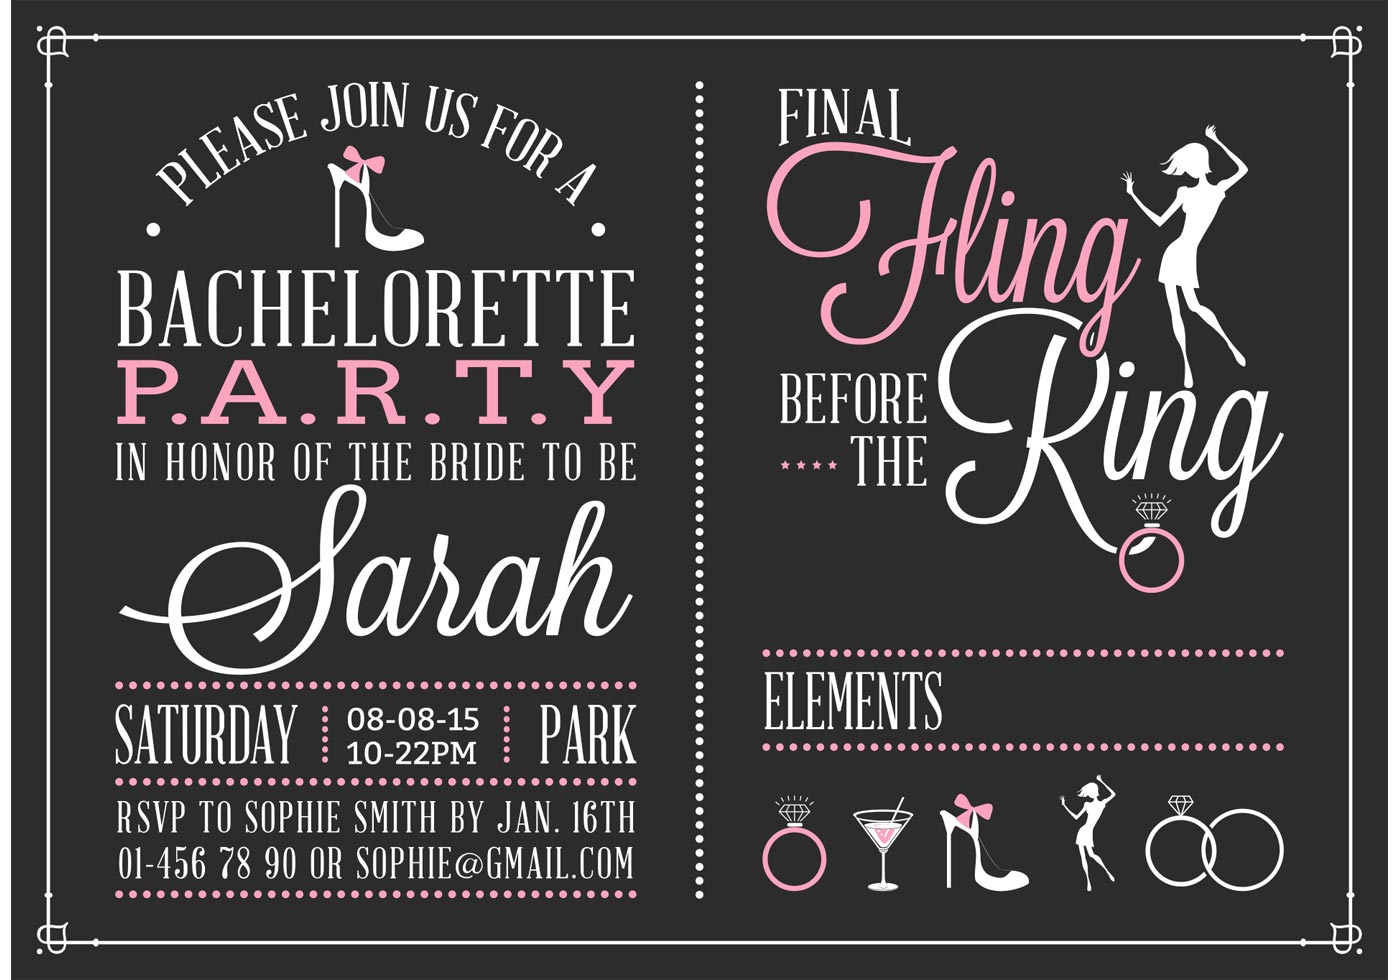 Bachelorette Party Invitation Vector - Download Free Vectors